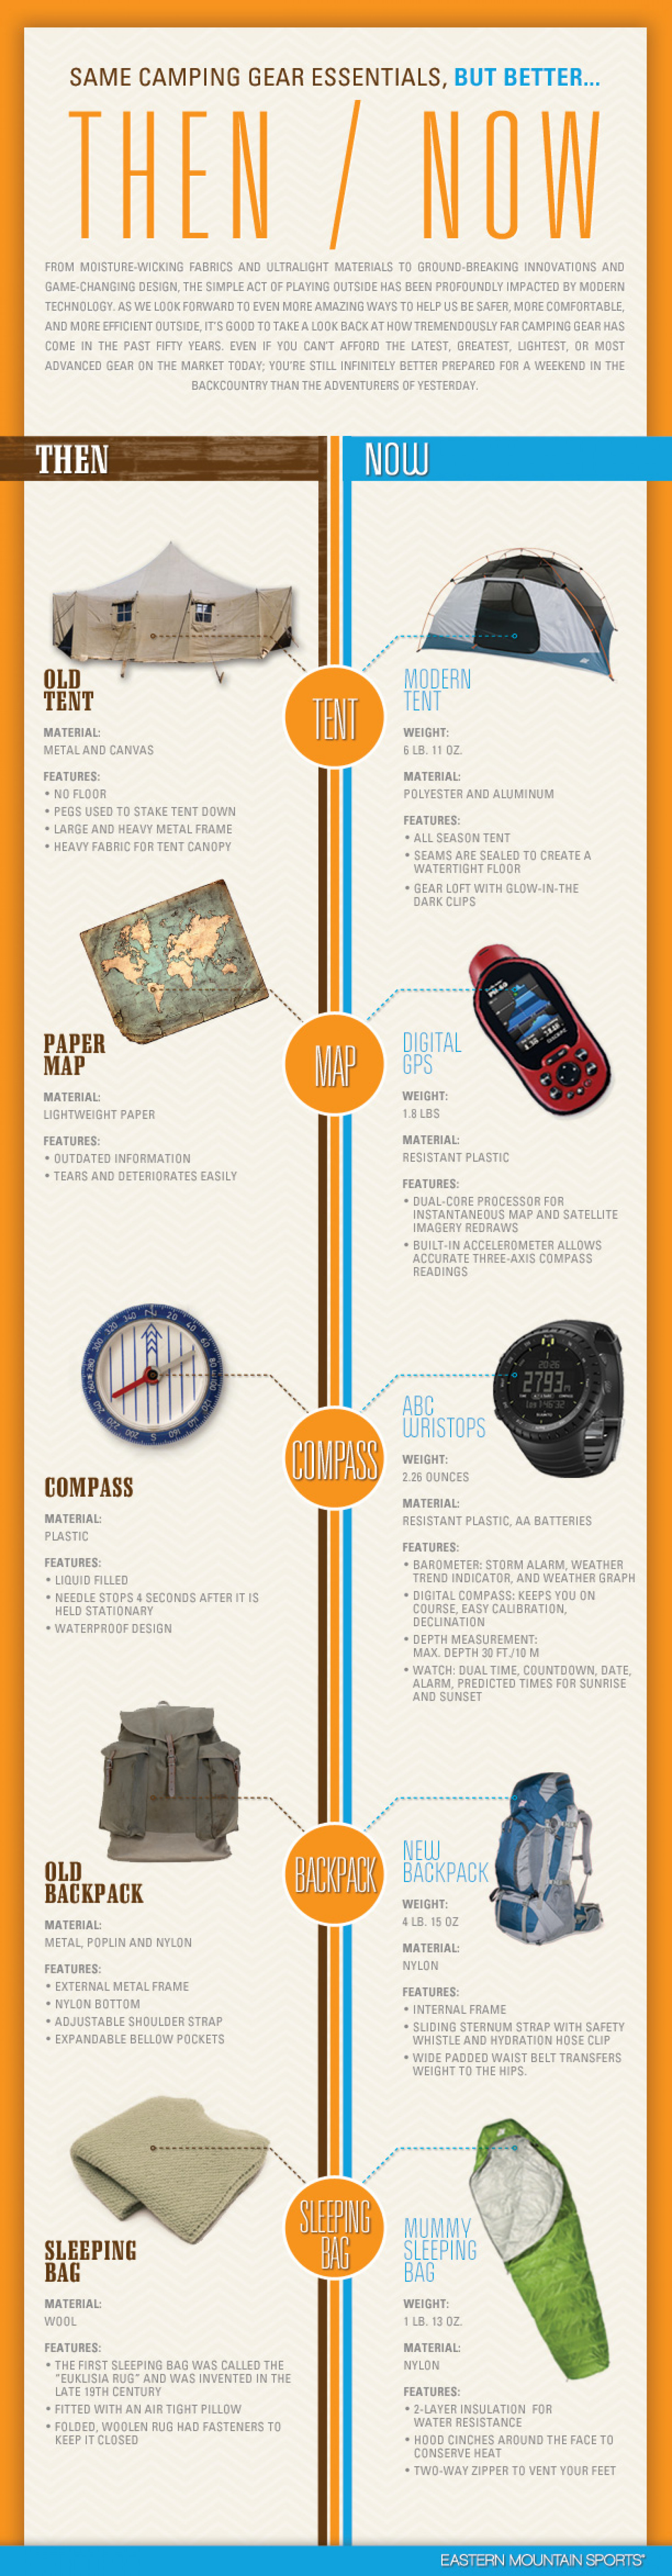 Then/ Now: Same Camping Gear Essentials, But Better Infographic